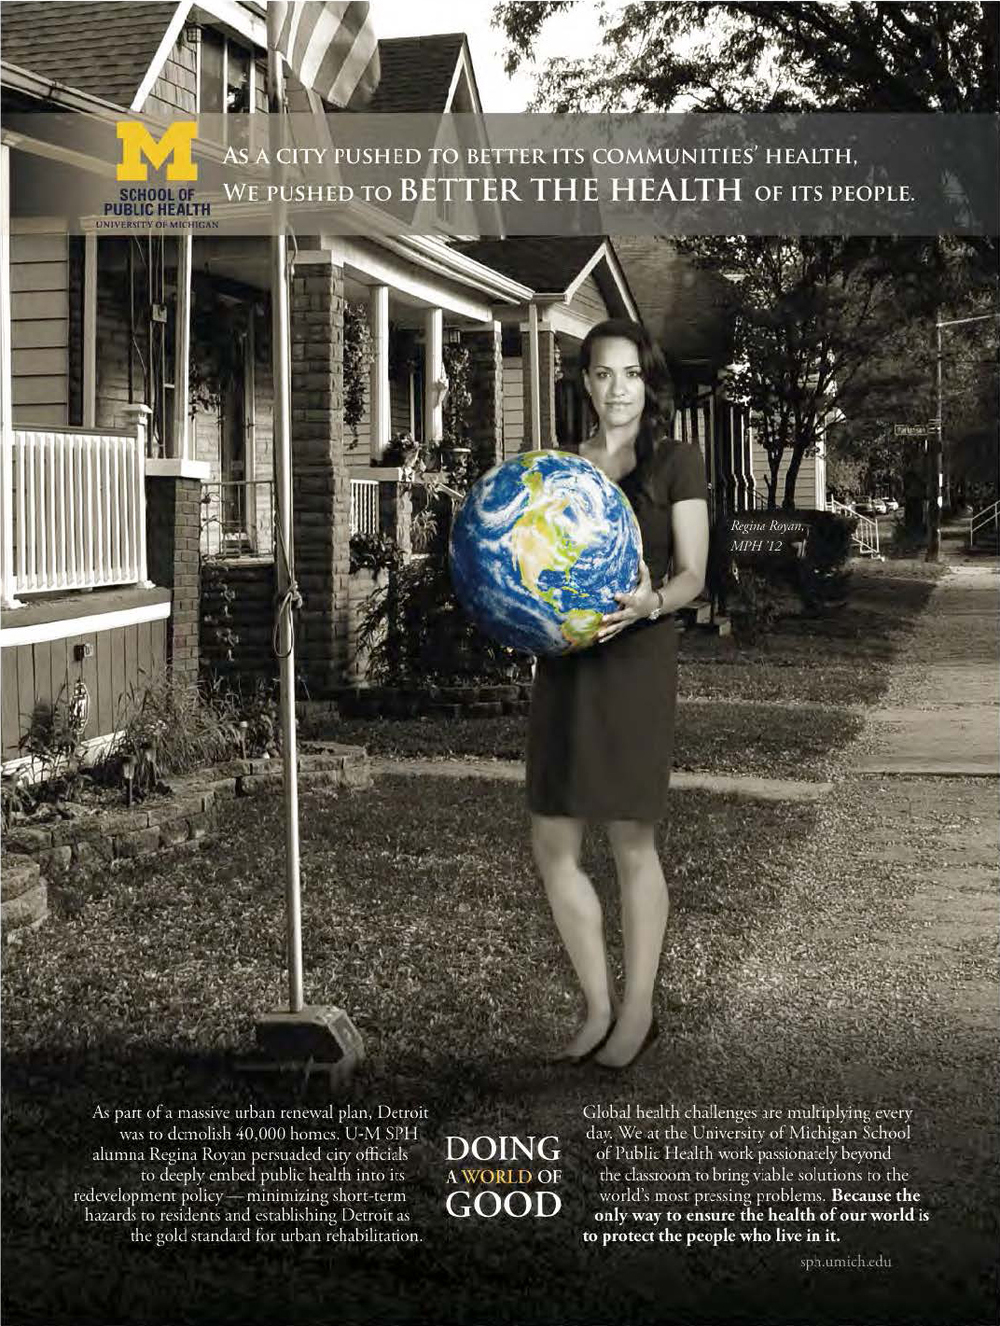 U of M School of Public Health-Time Magazine